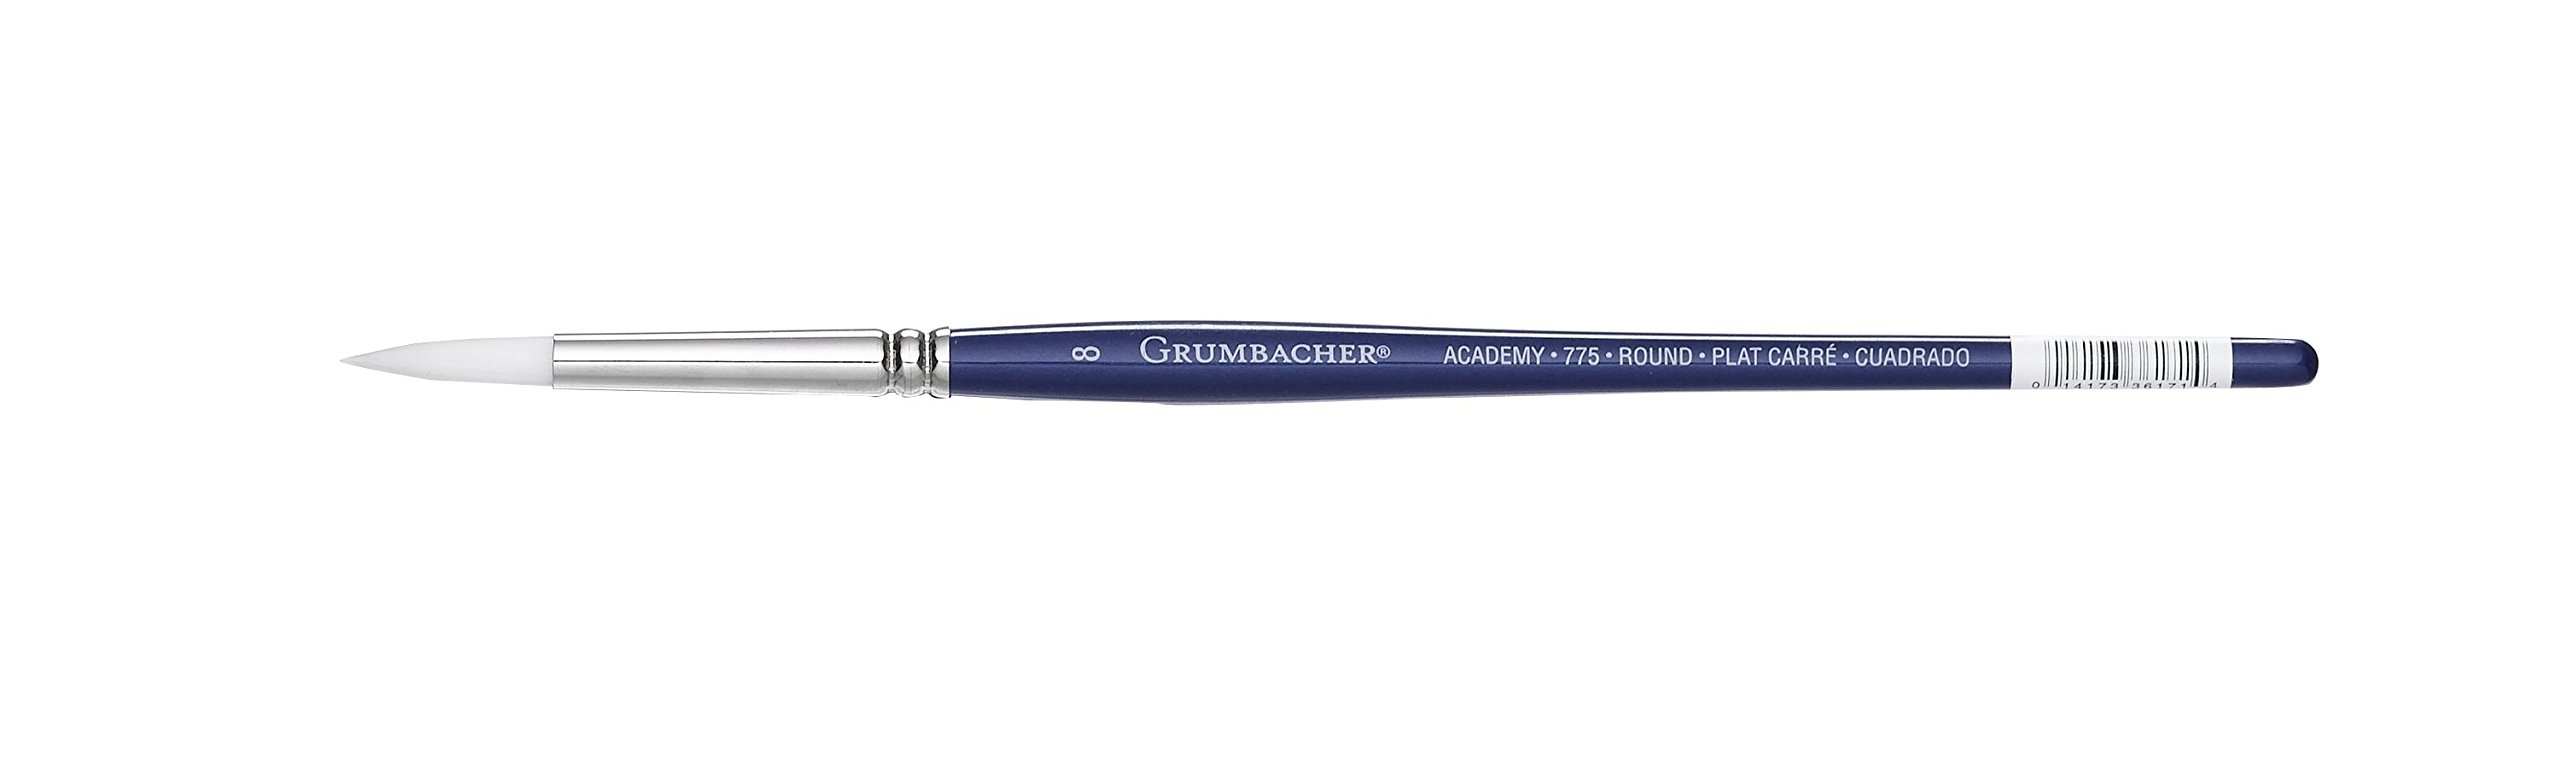 Grumbacher Academy Watercolor Round Brush, White Nylon Bristles, Size 8 (775.8)